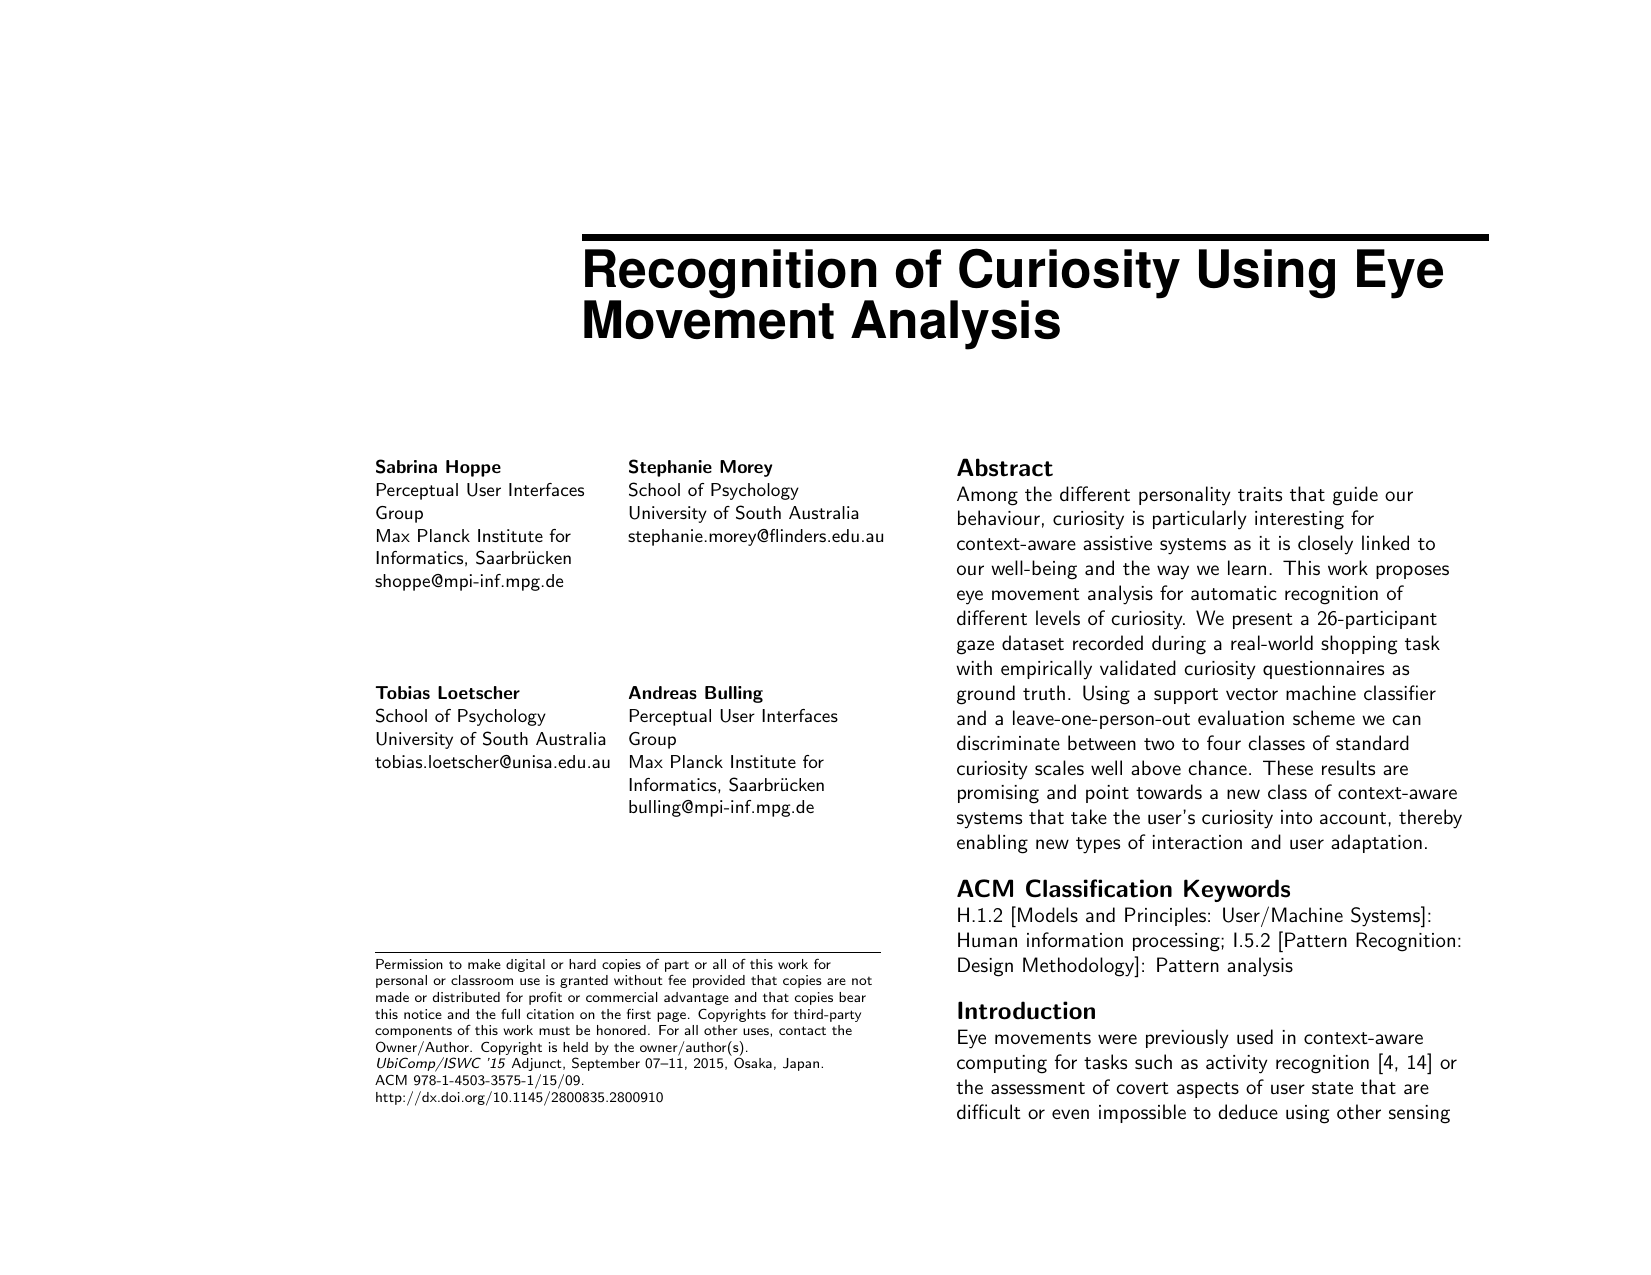 Recognition of Curiosity Using Eye Movement Analysis